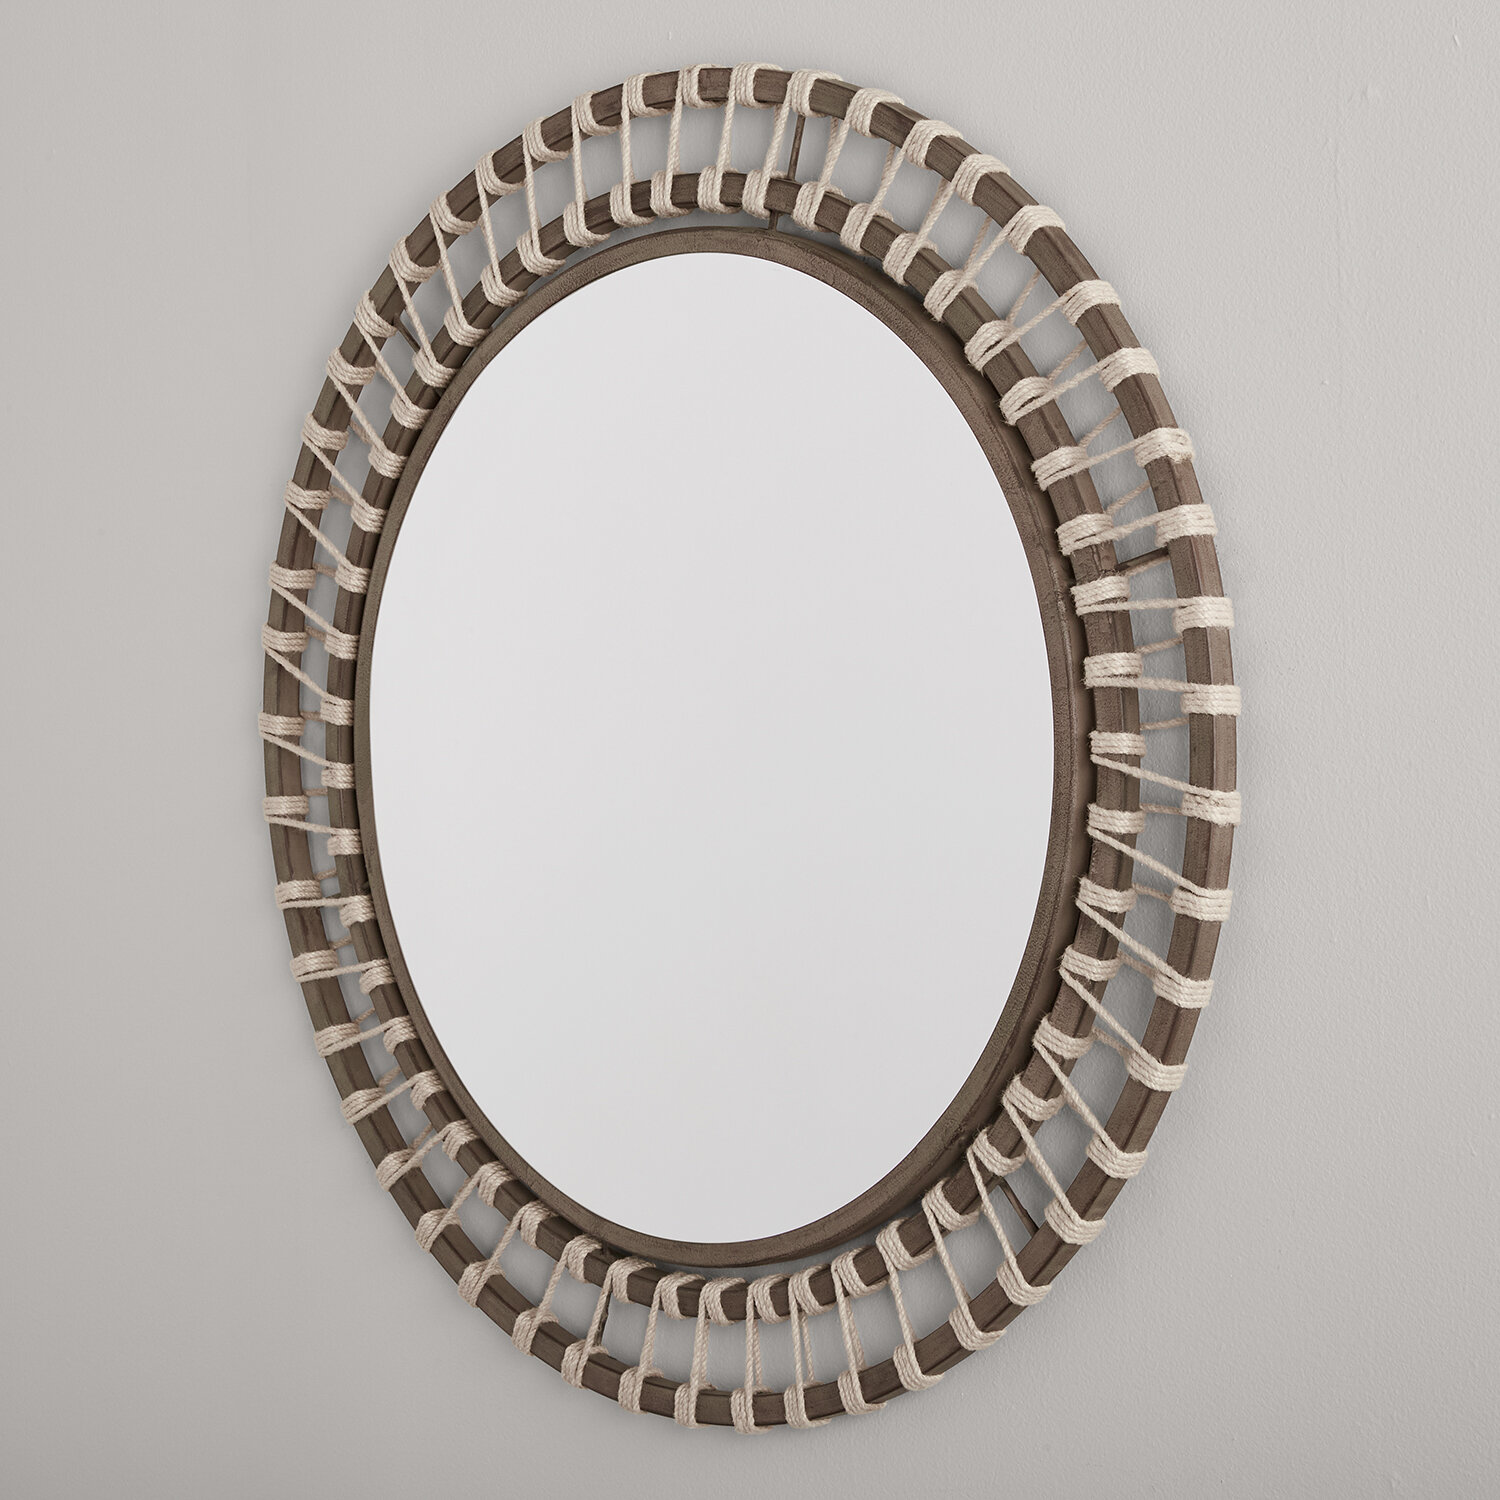 Convex Oval Wall Mirrors You Ll Love In 2021 Wayfair